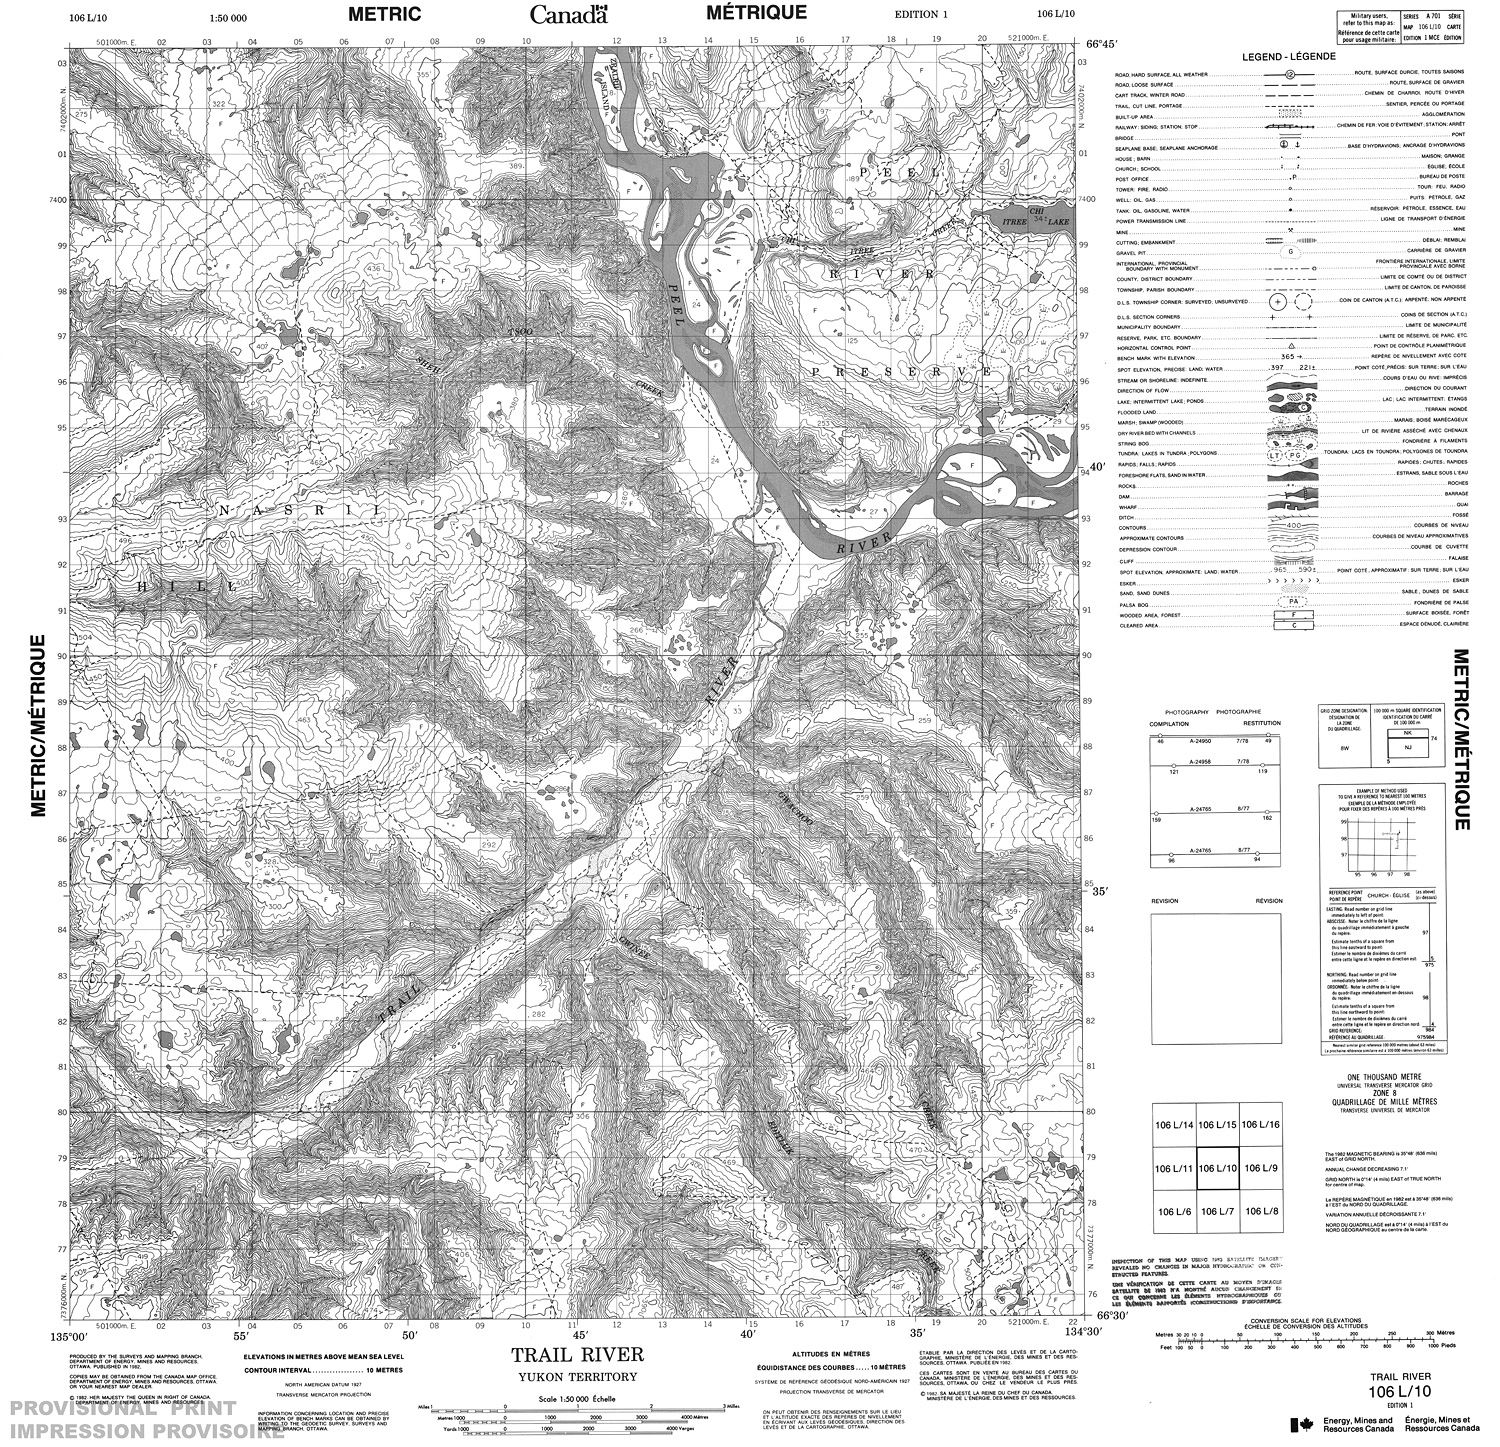 106L10 - TRAIL RIVER - Topographic Map